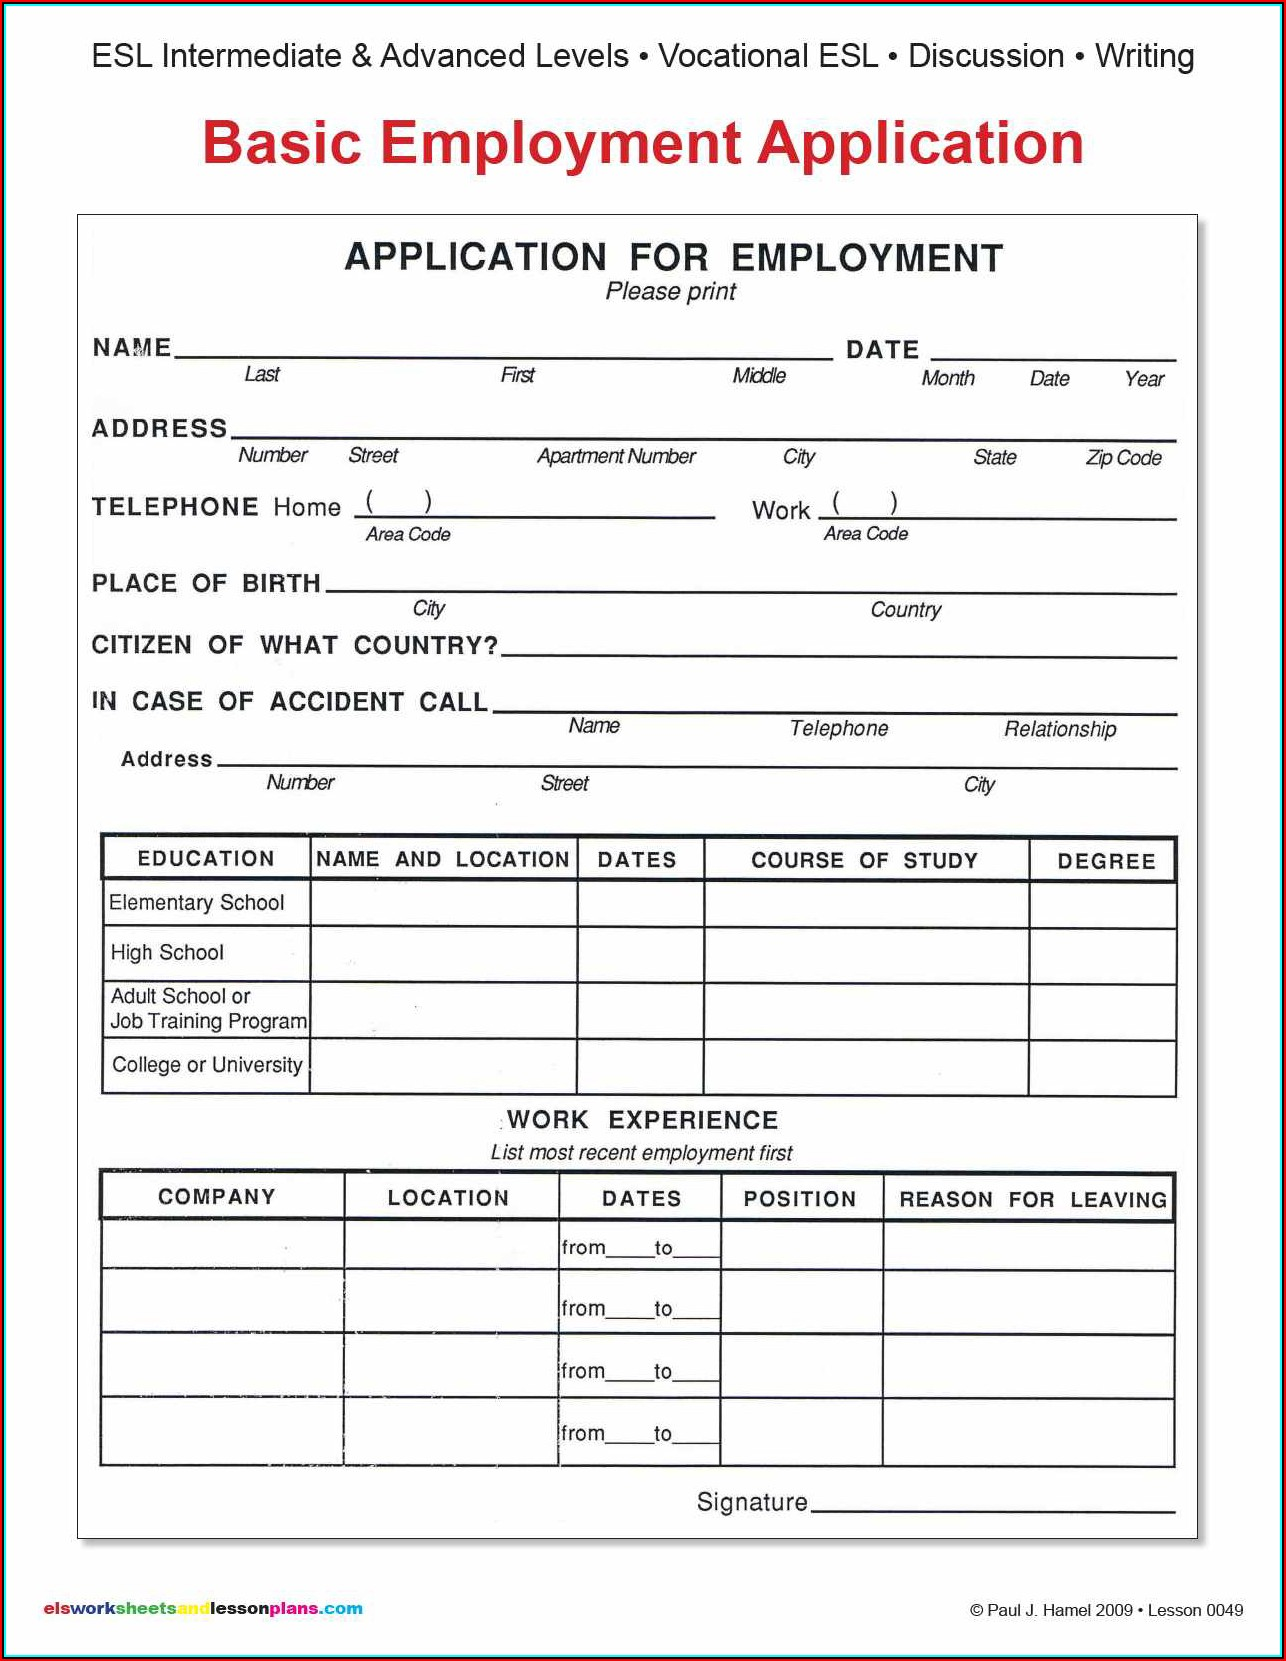 W2 Form For Employment